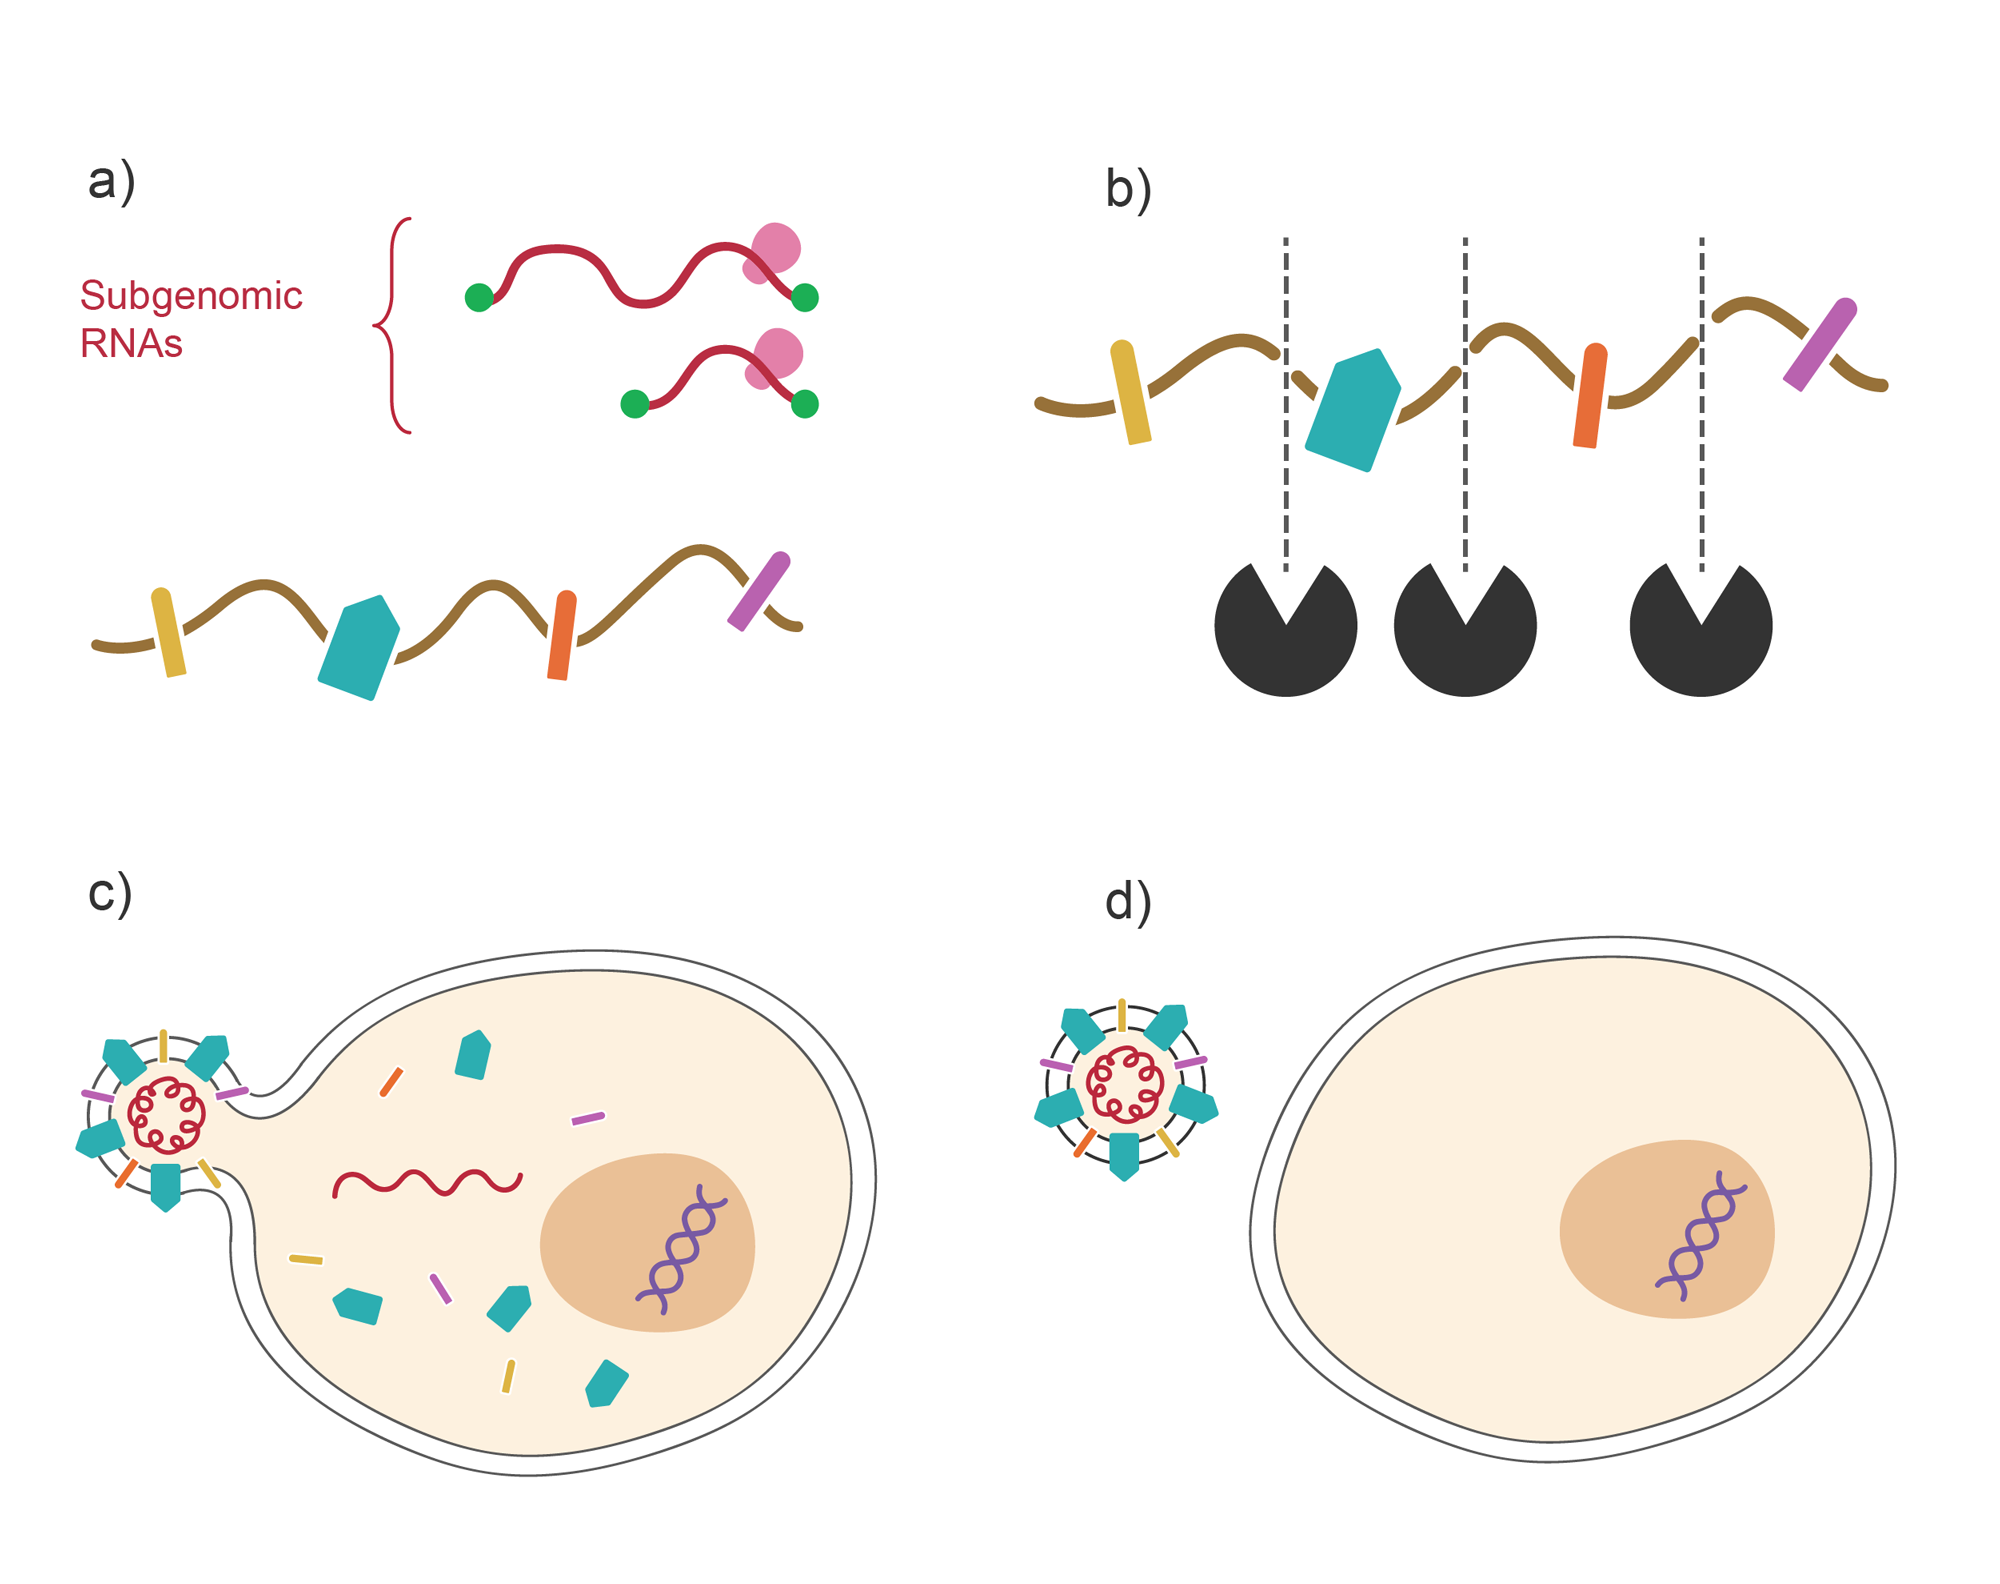 Viral protein translation and packaging into new virus. Series of four images: protein translation, protease cleavage, packaging, budding. Illustration.